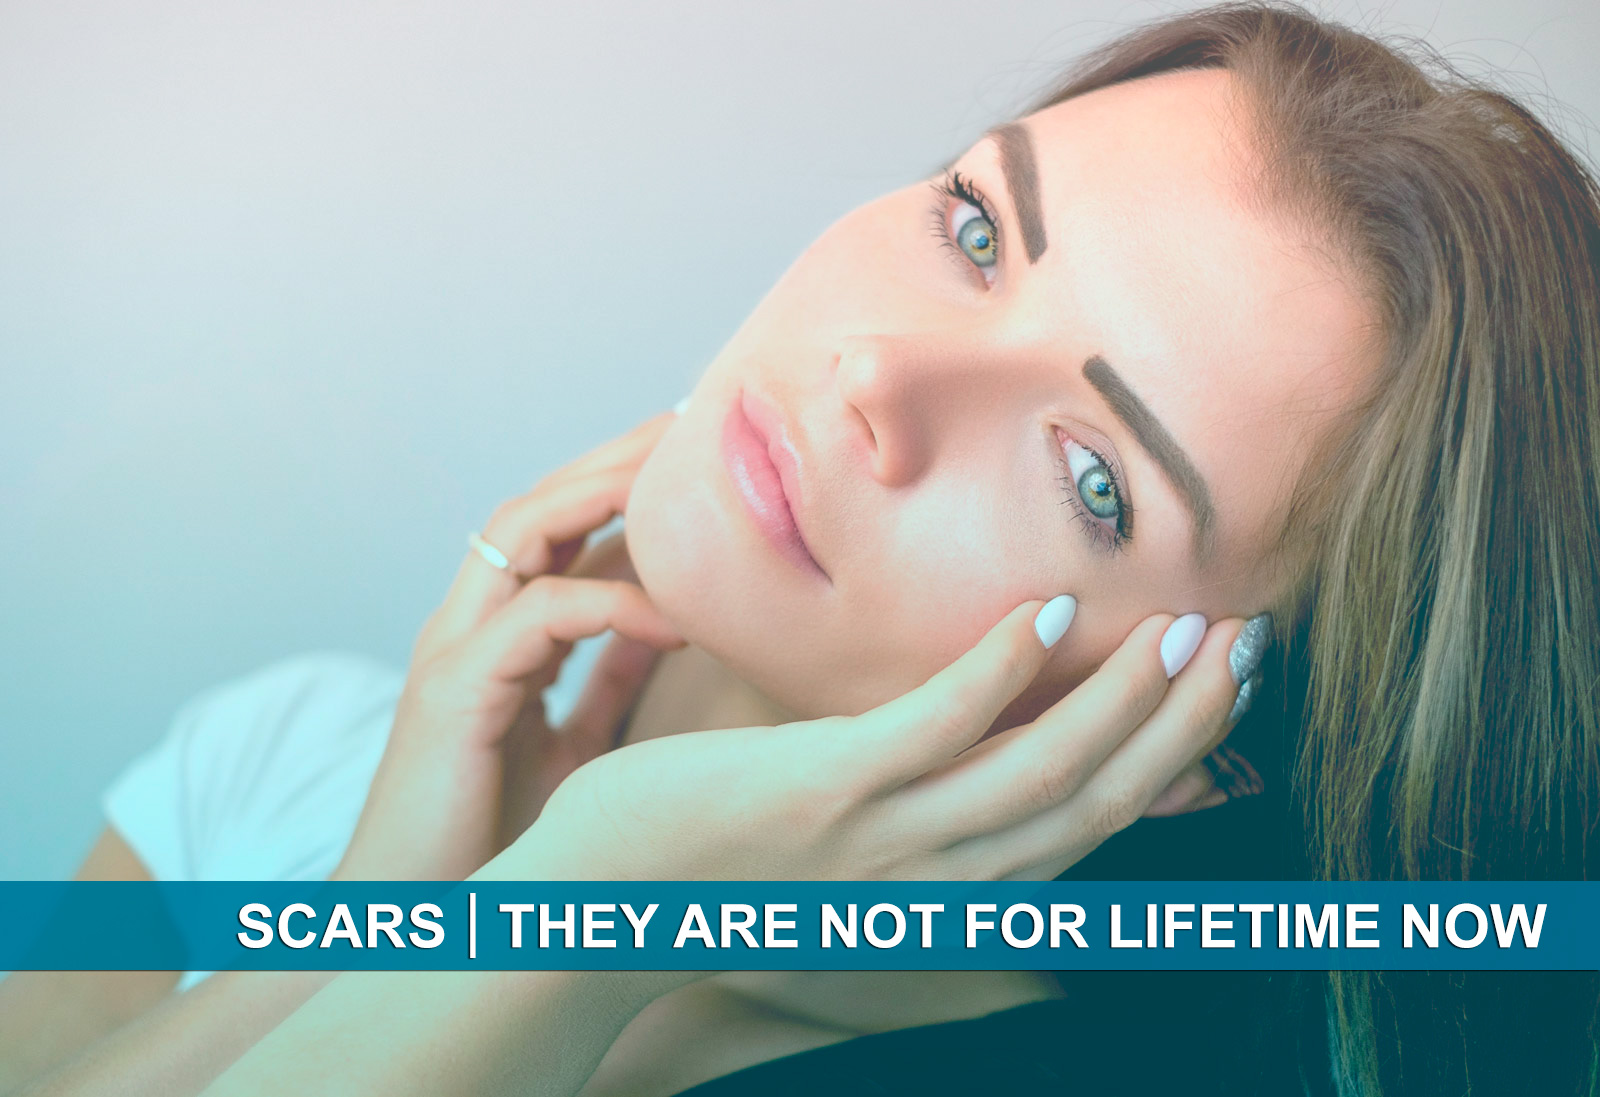 Scars: They Do Not Have to Last a Lifetime